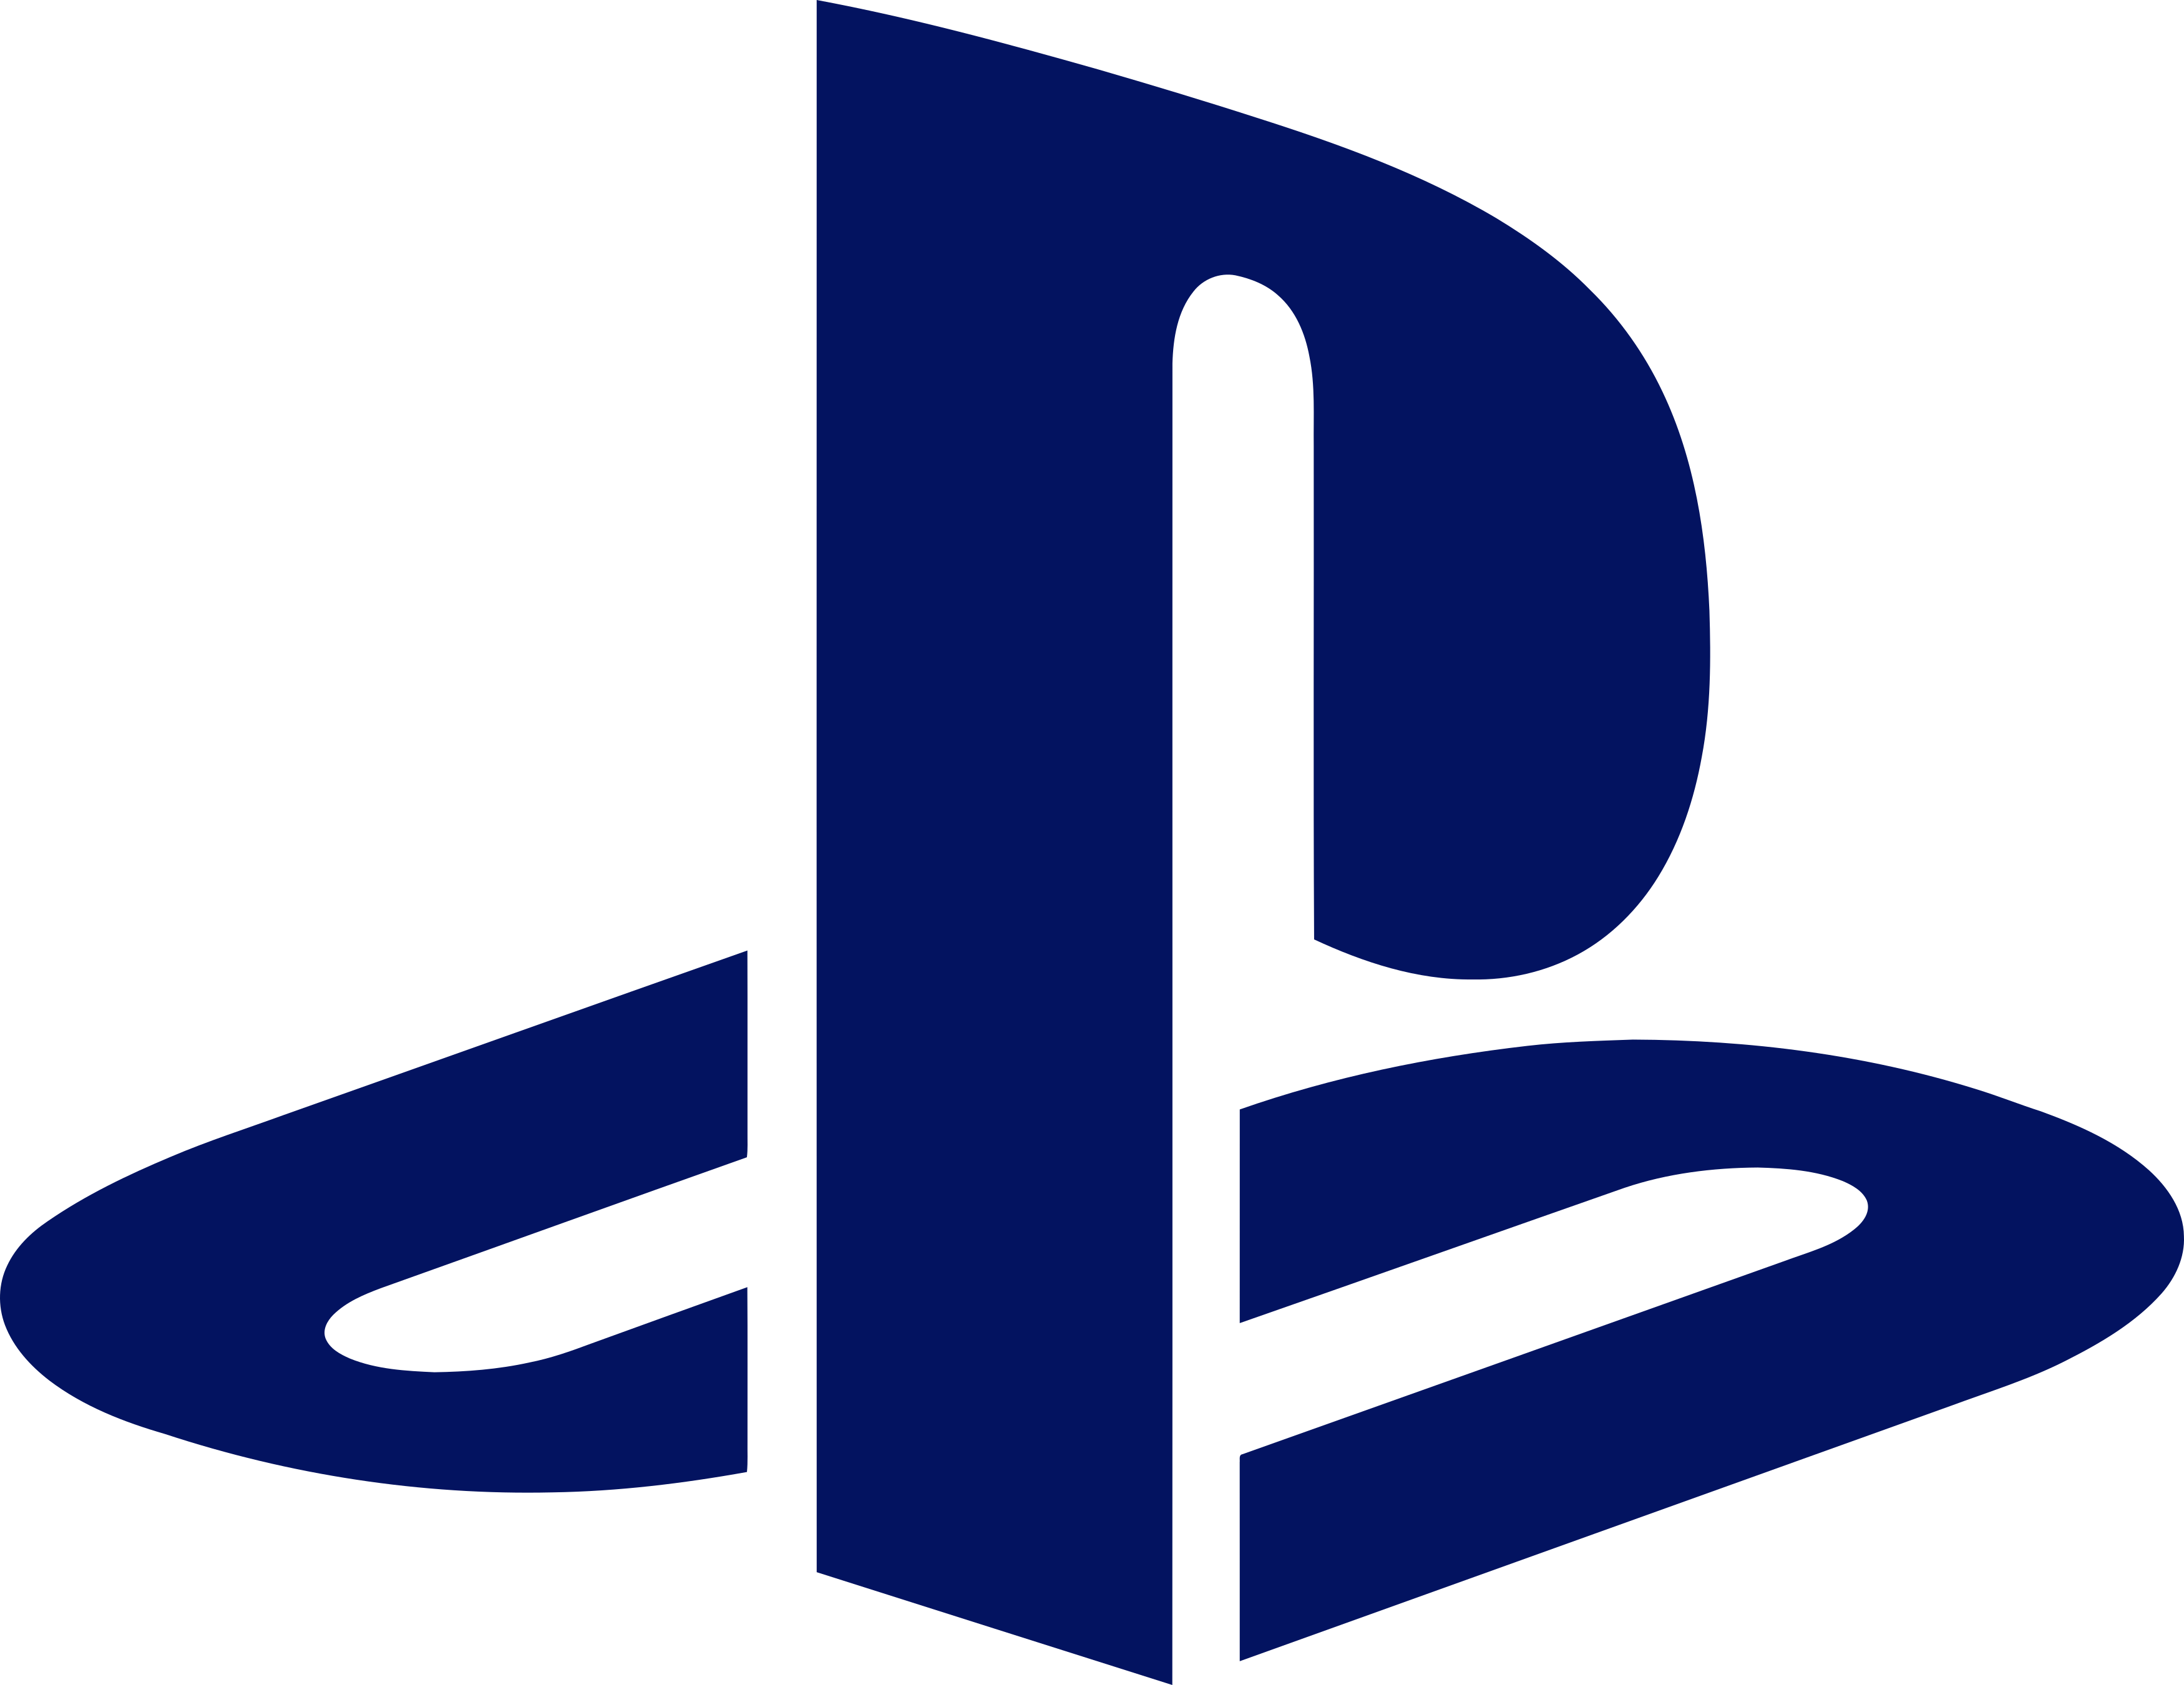 Ps4 logo png. Playstation ps logodownload org